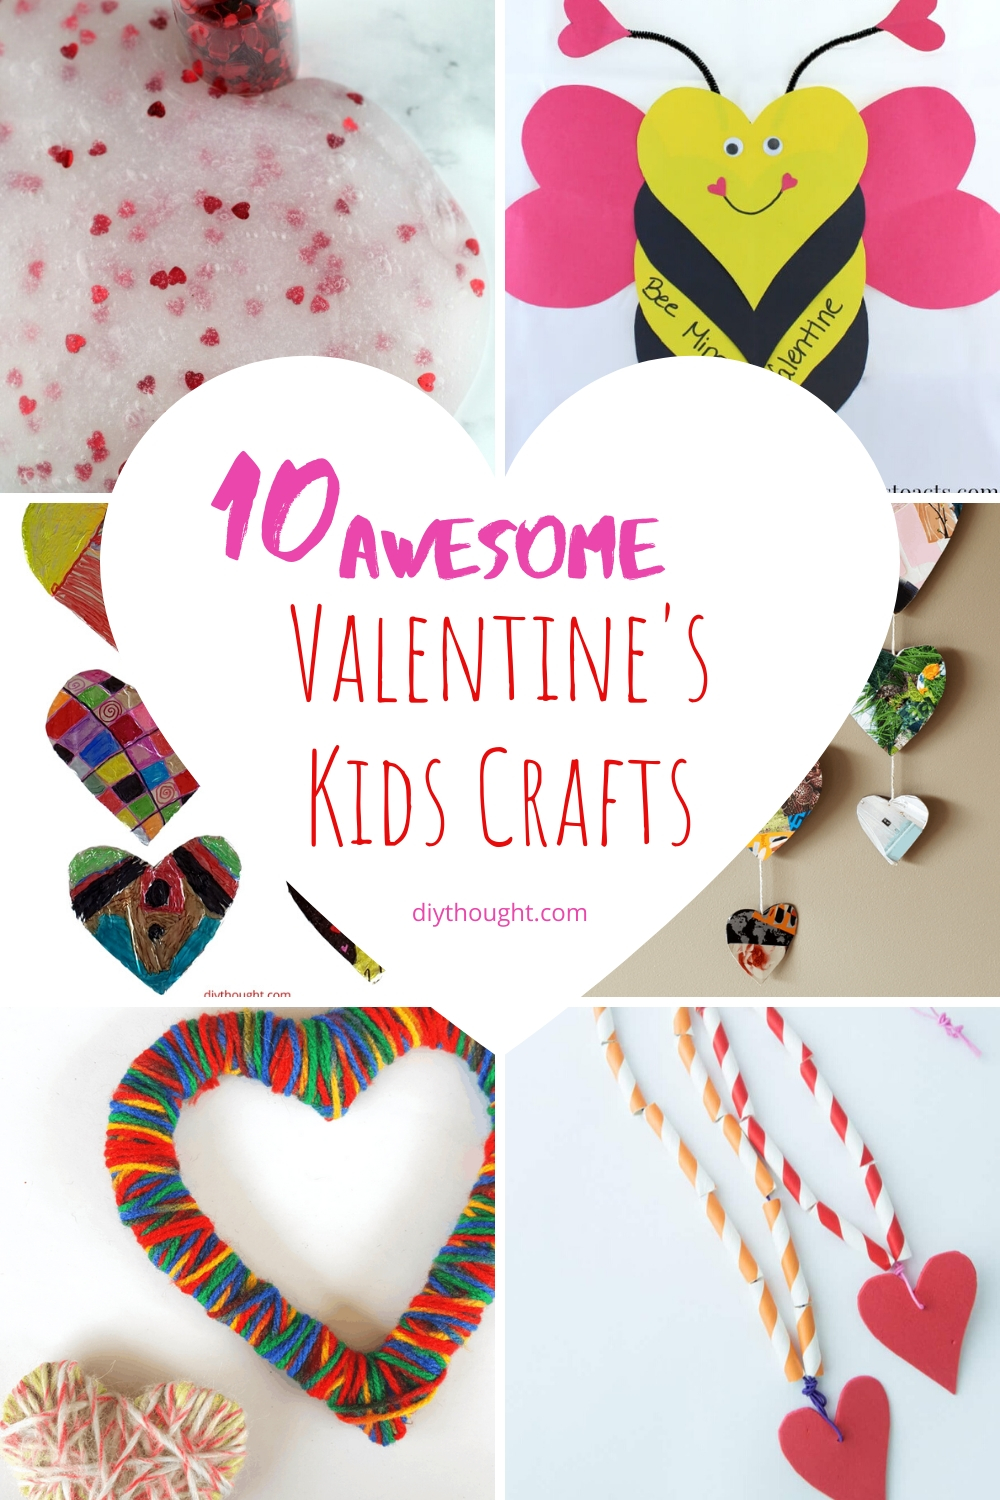 10 Valentine's Kids Crafts